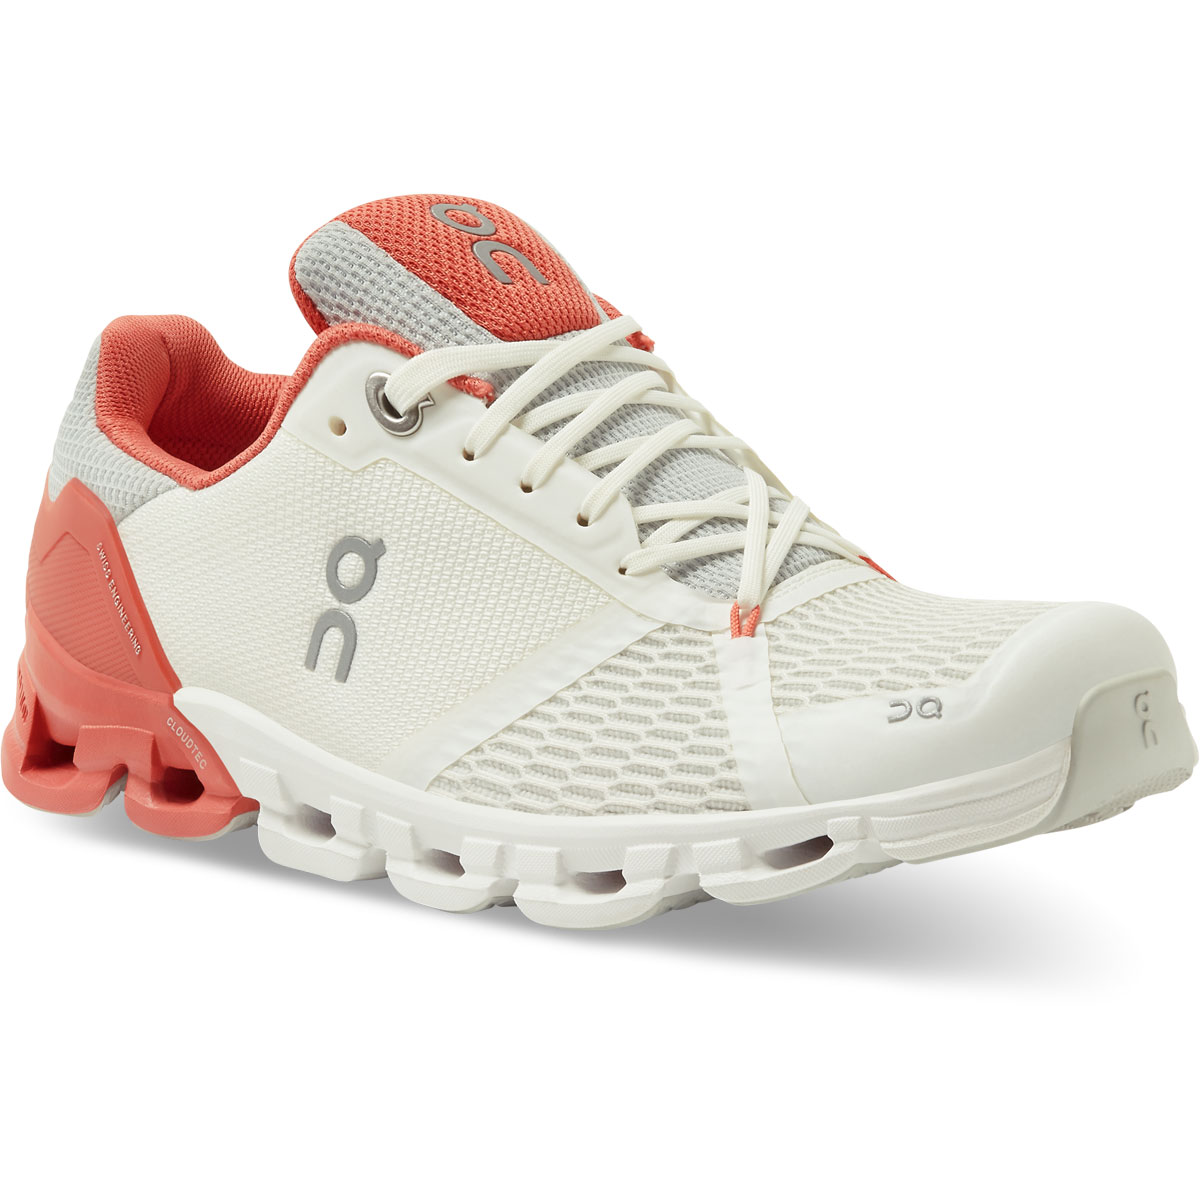 Women's On Cloudflyer 2.0 Running Shoe - Color: White/Coral - Size: 5 - Width: Regular, White/Coral, large, image 2